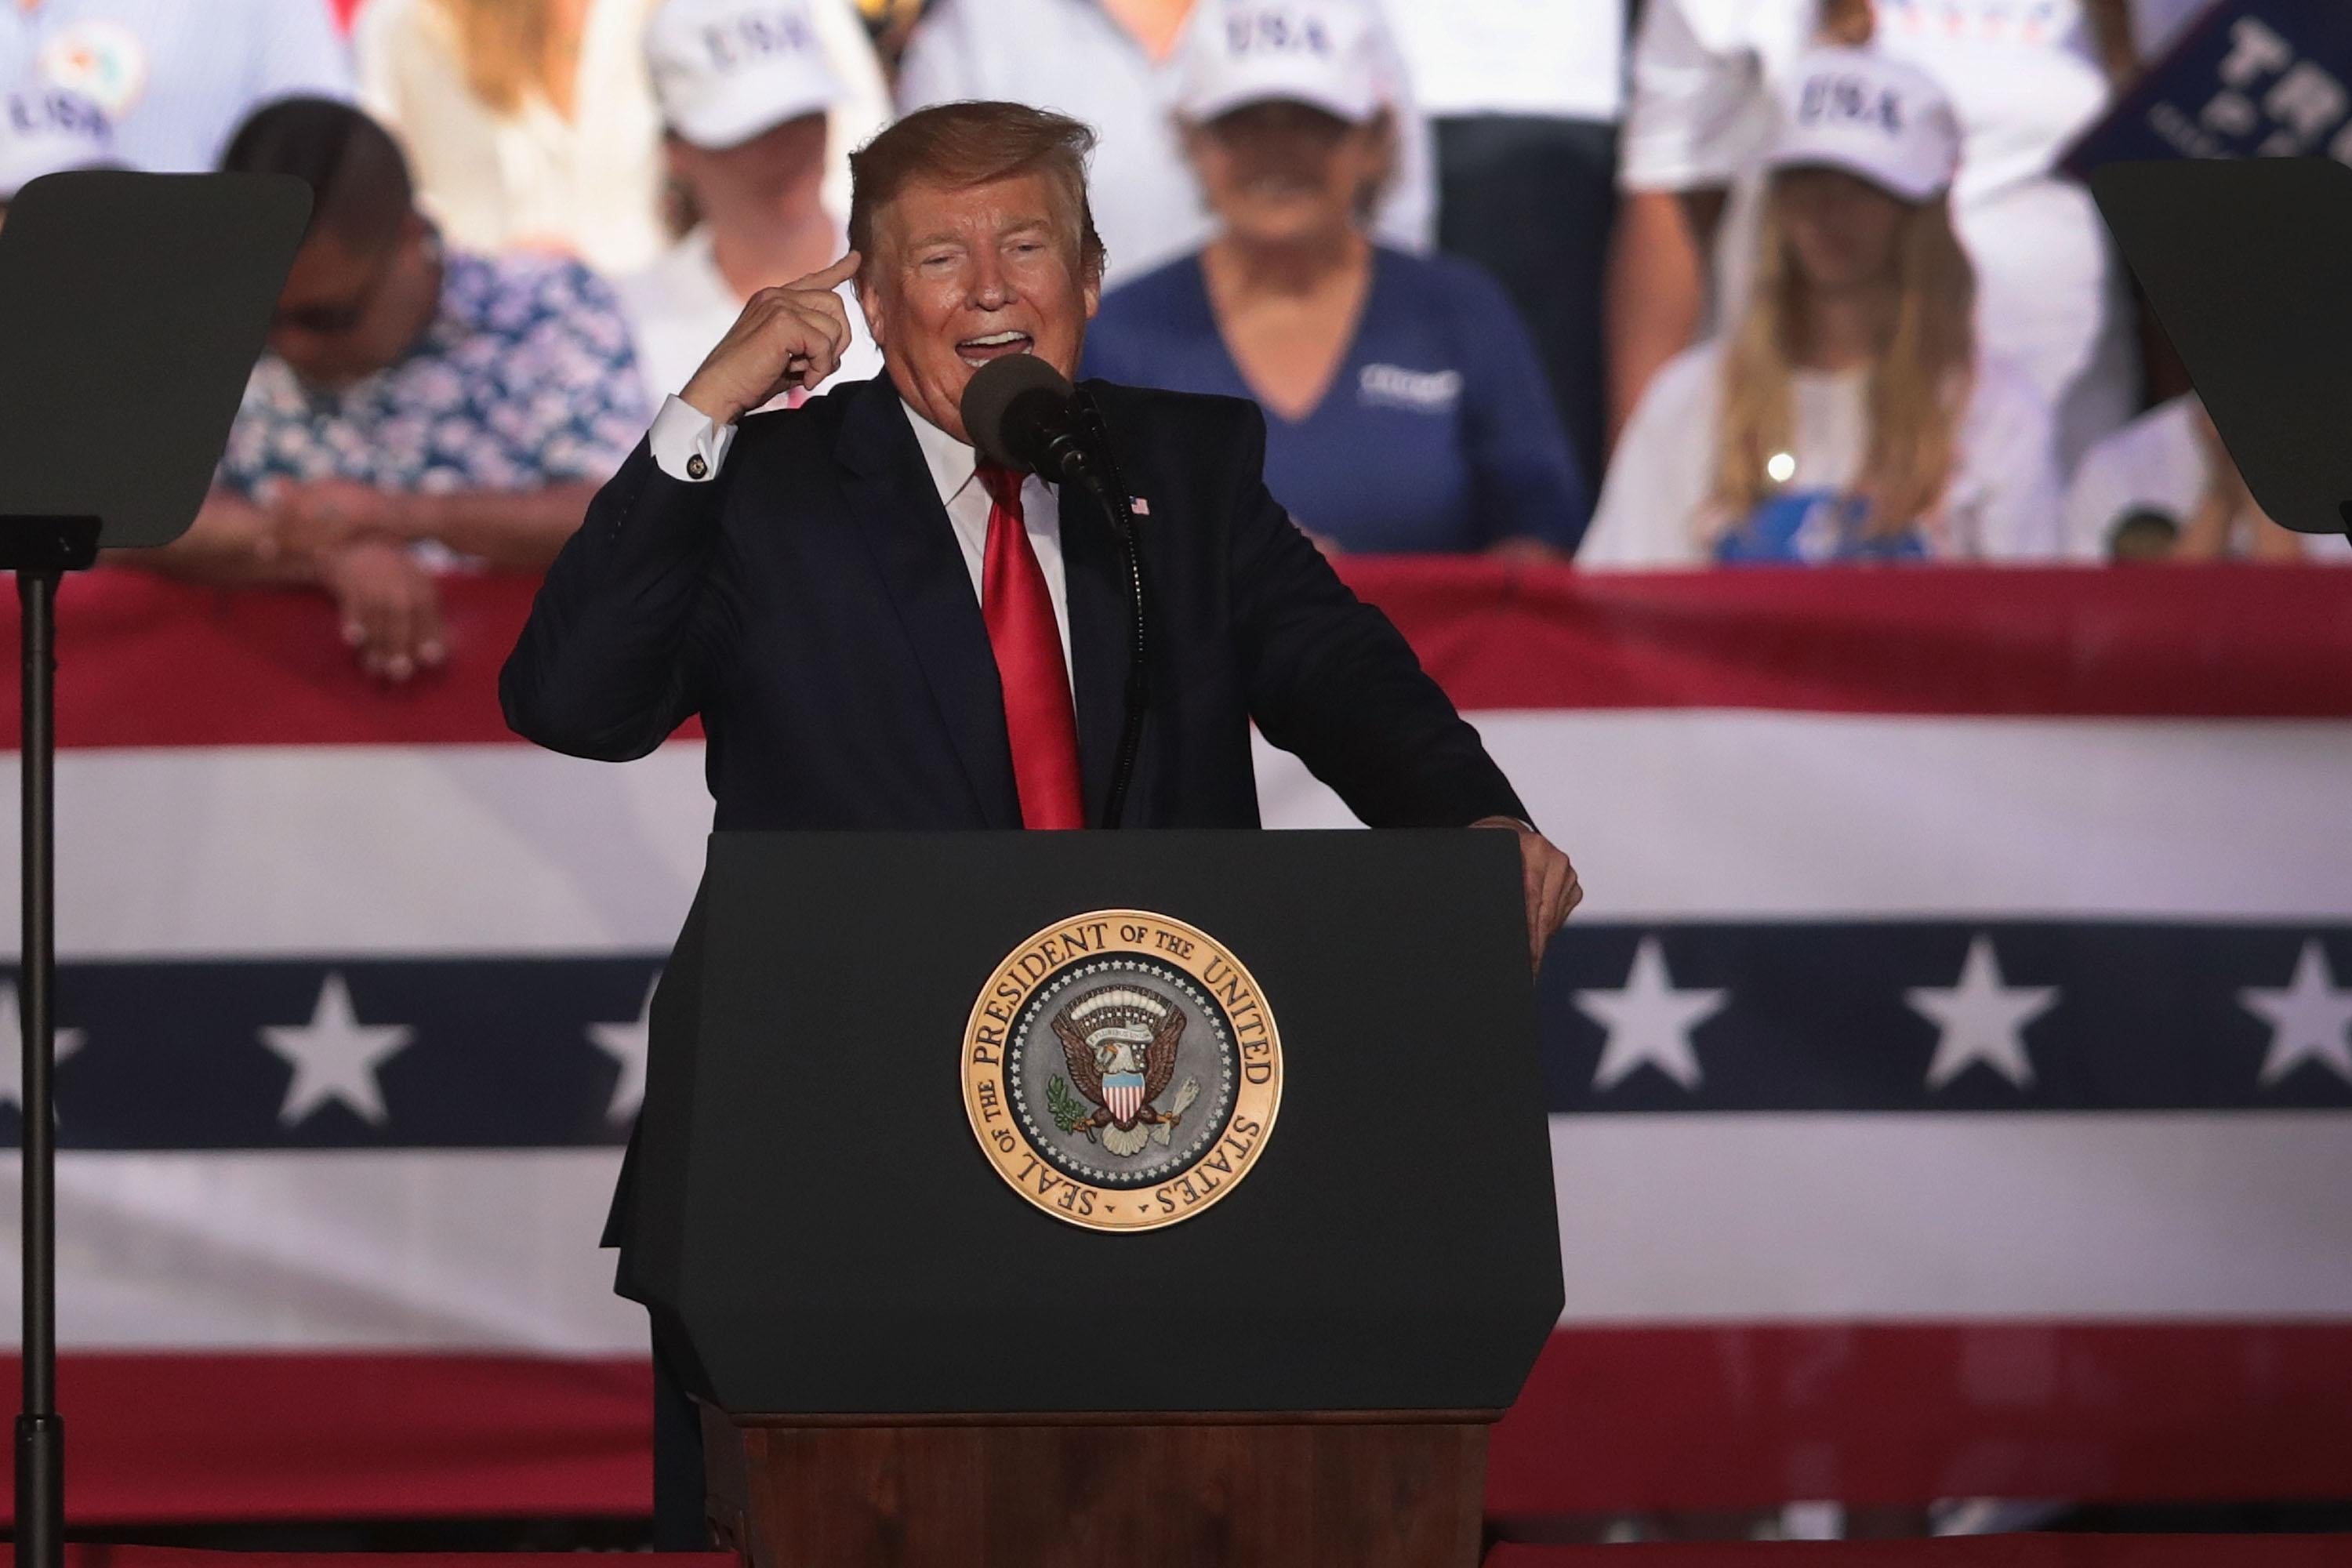 Trump speaks at a podium at a rally.